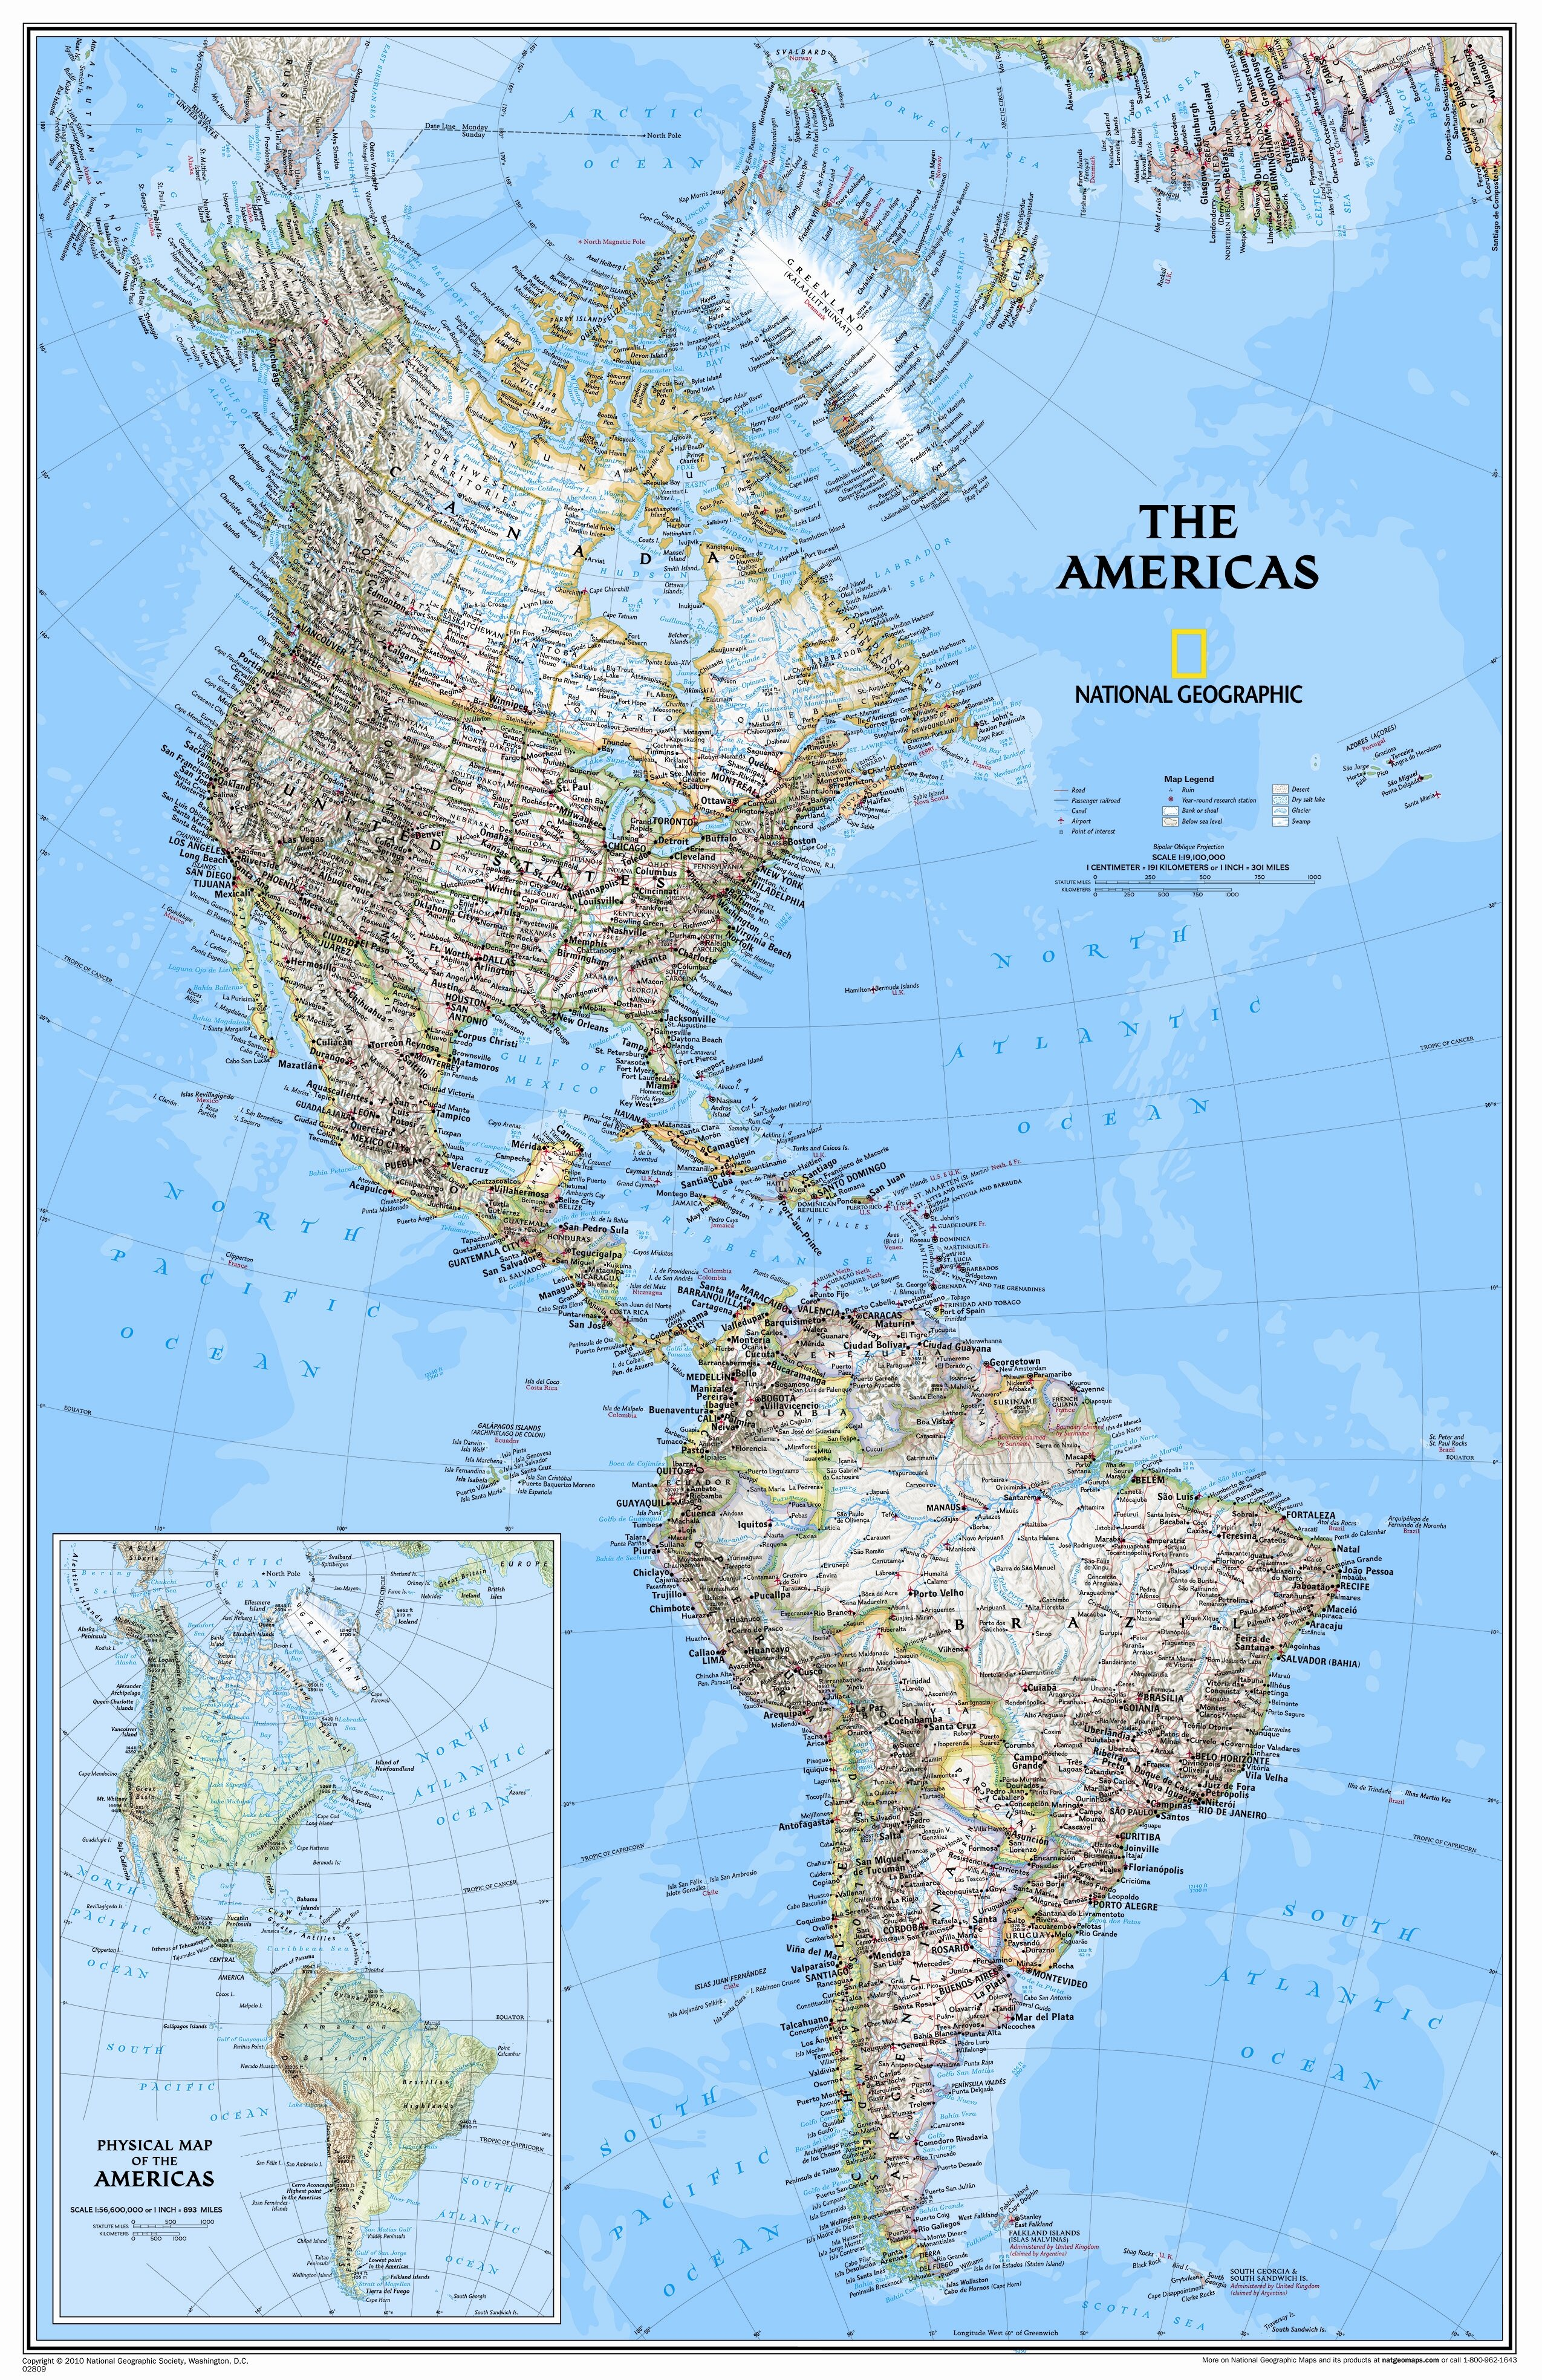 National Geographic Maps The Americas Classic Wall Map | Wayfair.ca